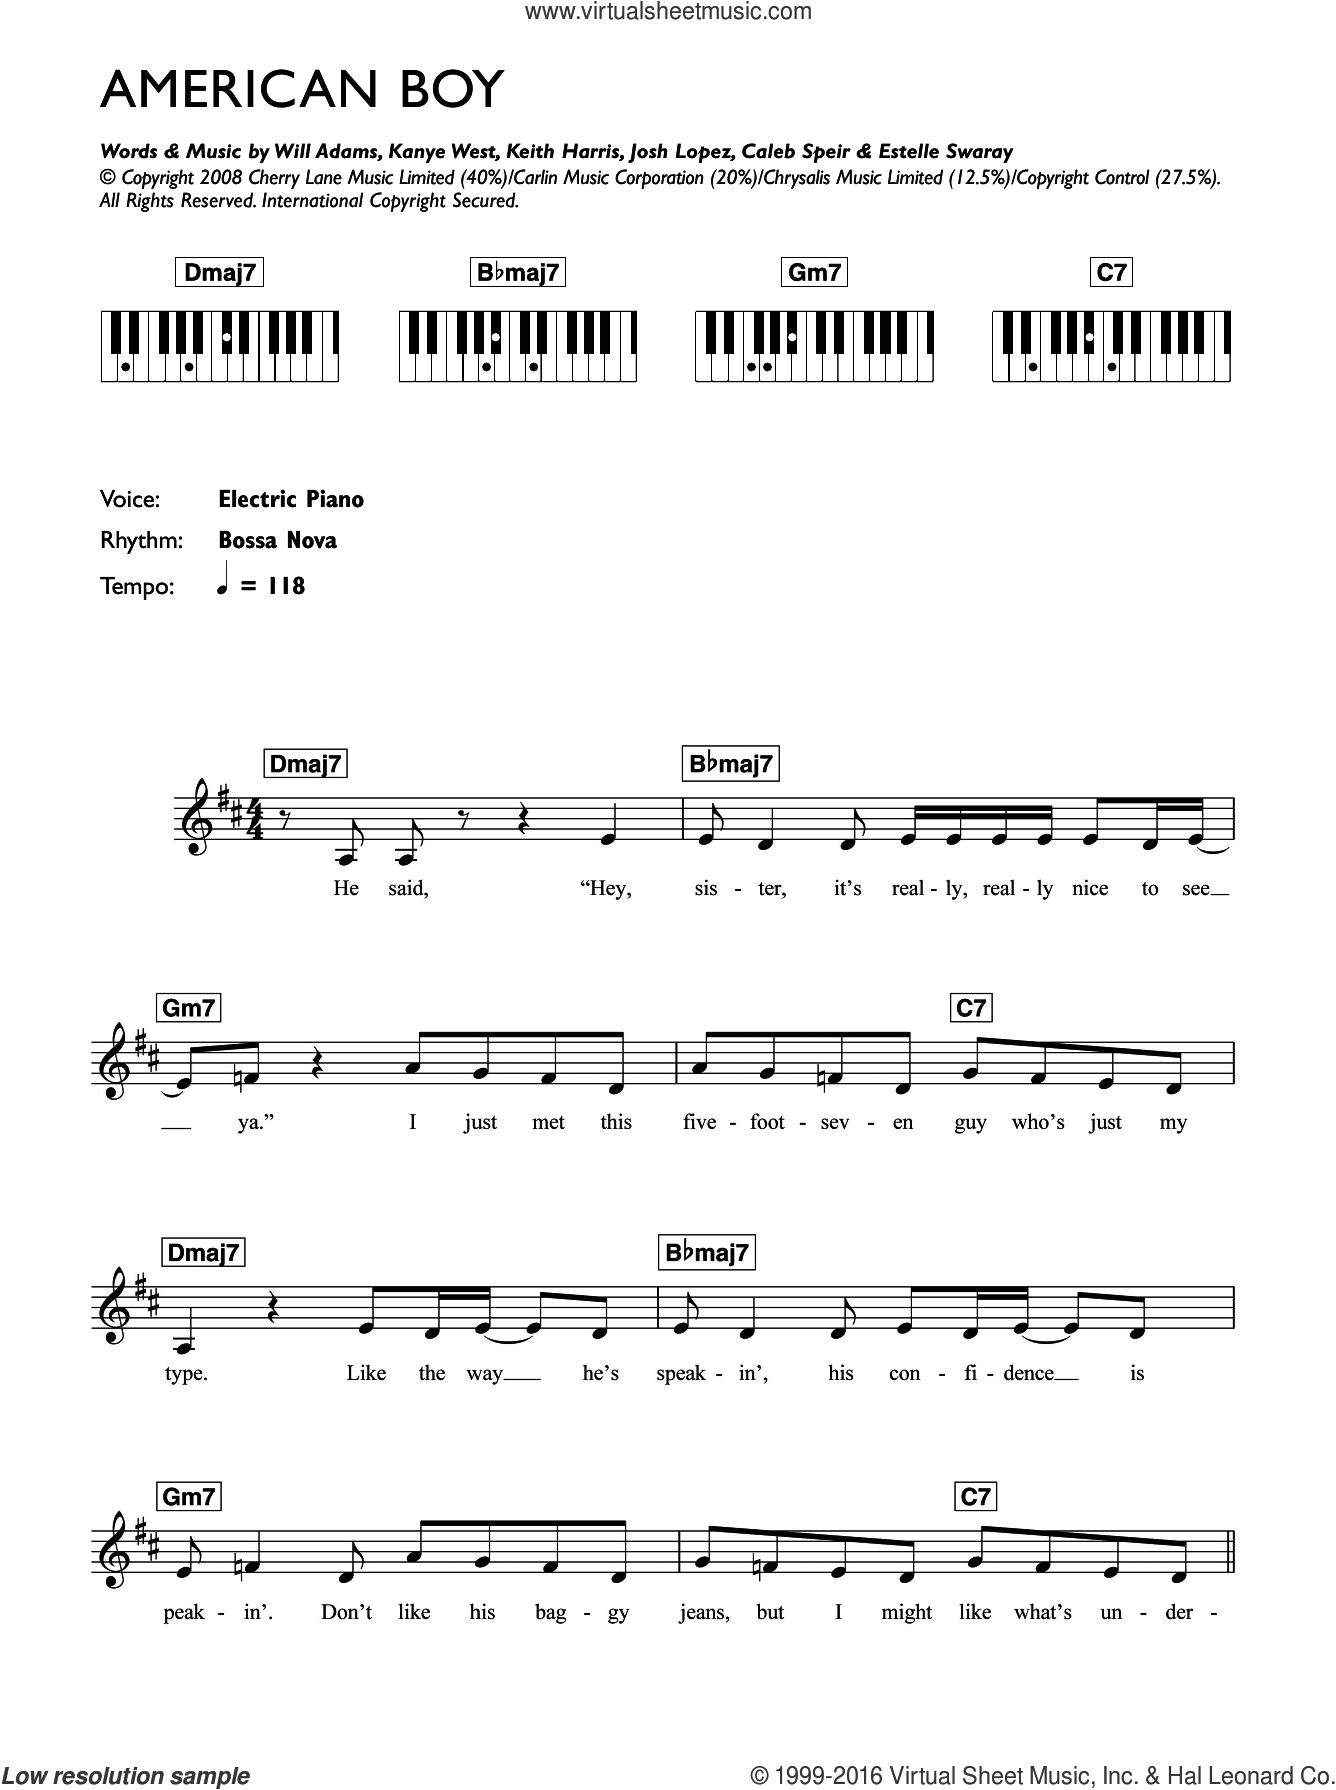 American Boy (featuring Kanye West) sheet music for piano solo (chords, lyrics, melody) by Will Adams, Caleb Speir and Kanye West. Score Image Preview.